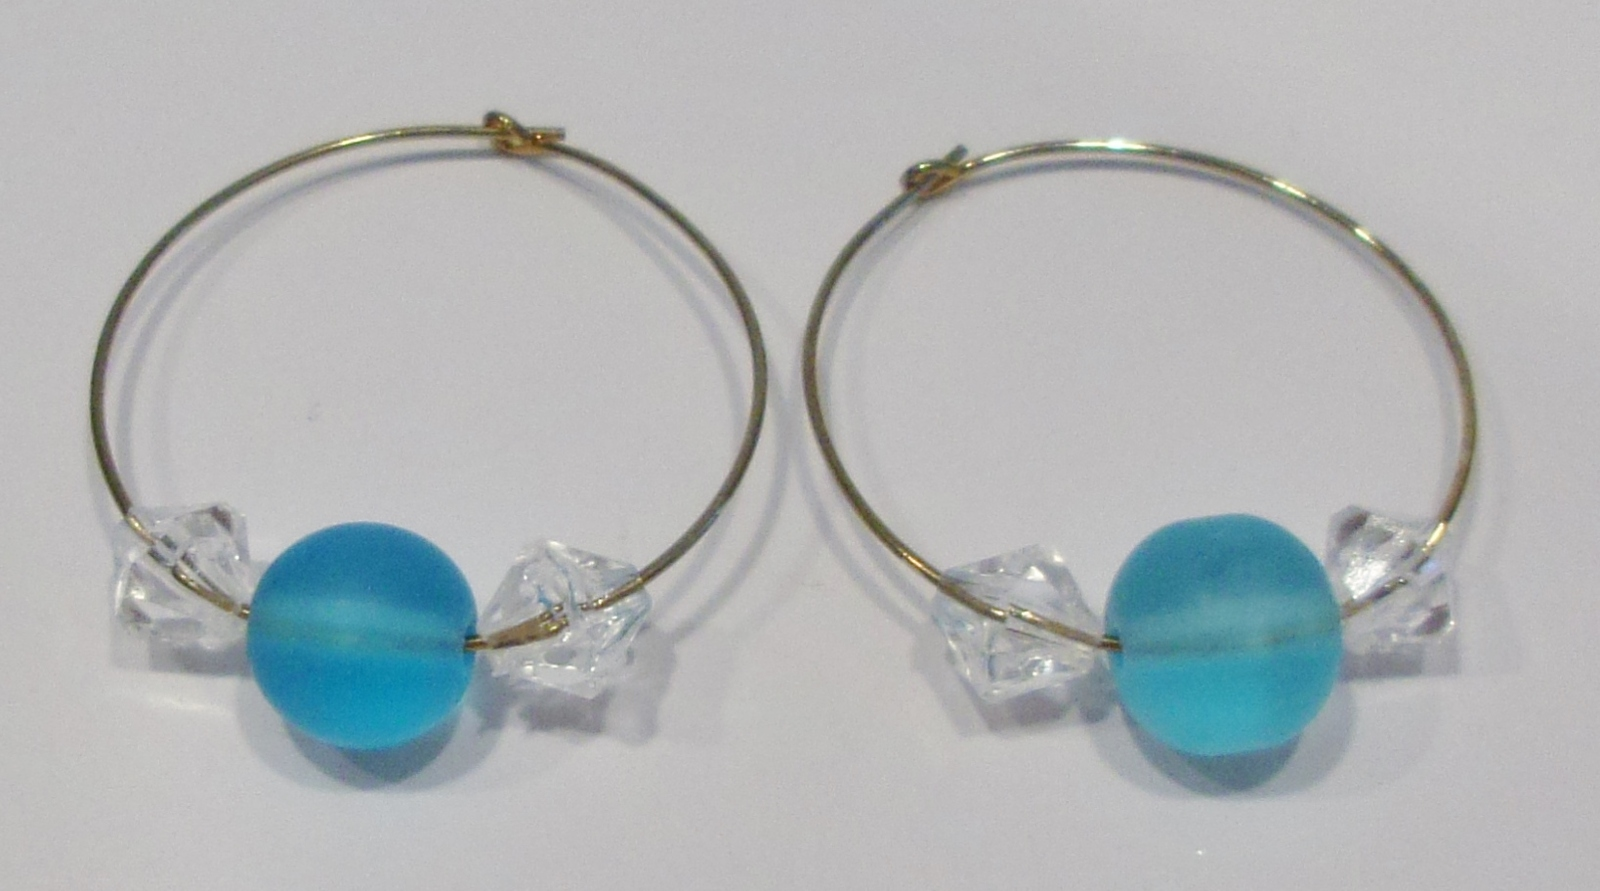 gold hoop earrings with turquoise and clear beads